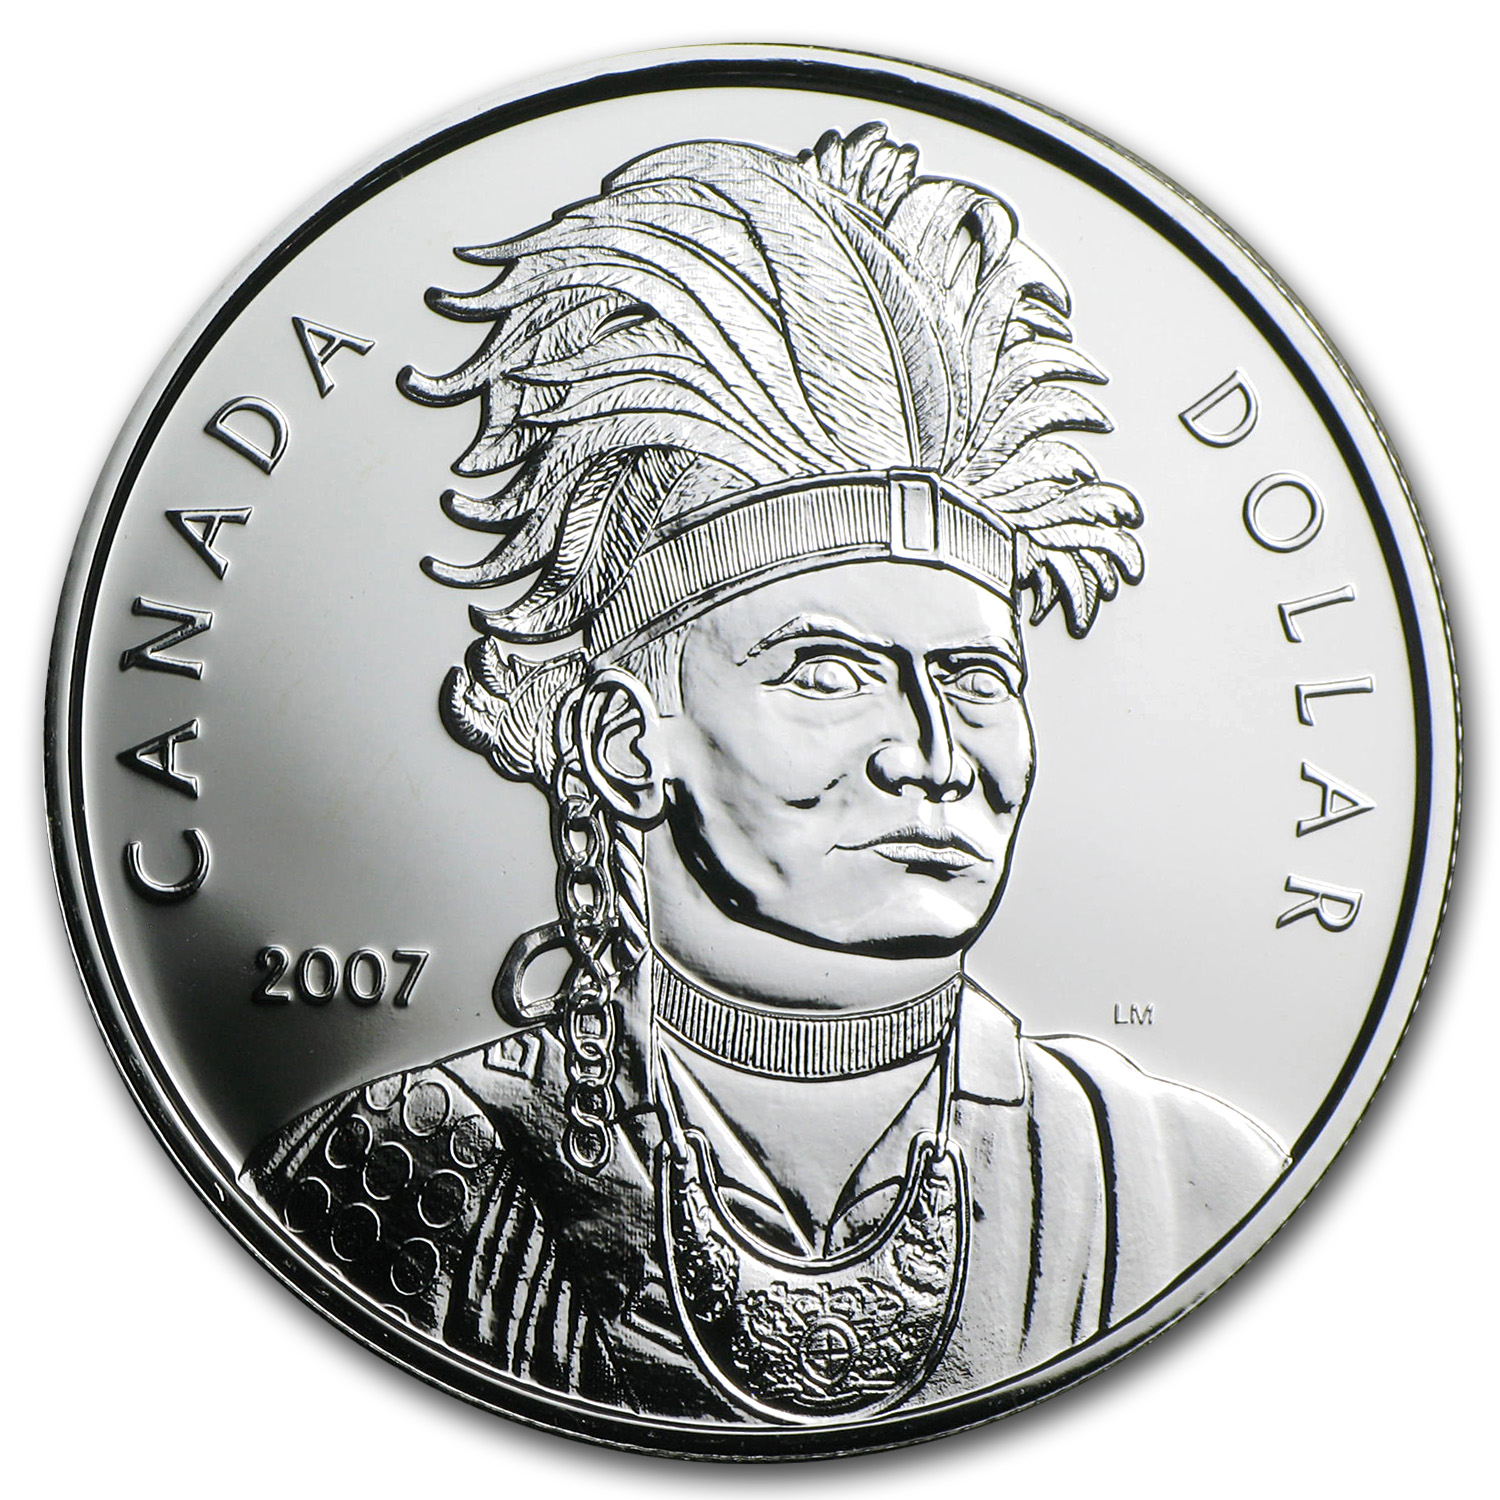 2007 Silver Canadian $1 - Celebrating Thayendanegea 1742-1807